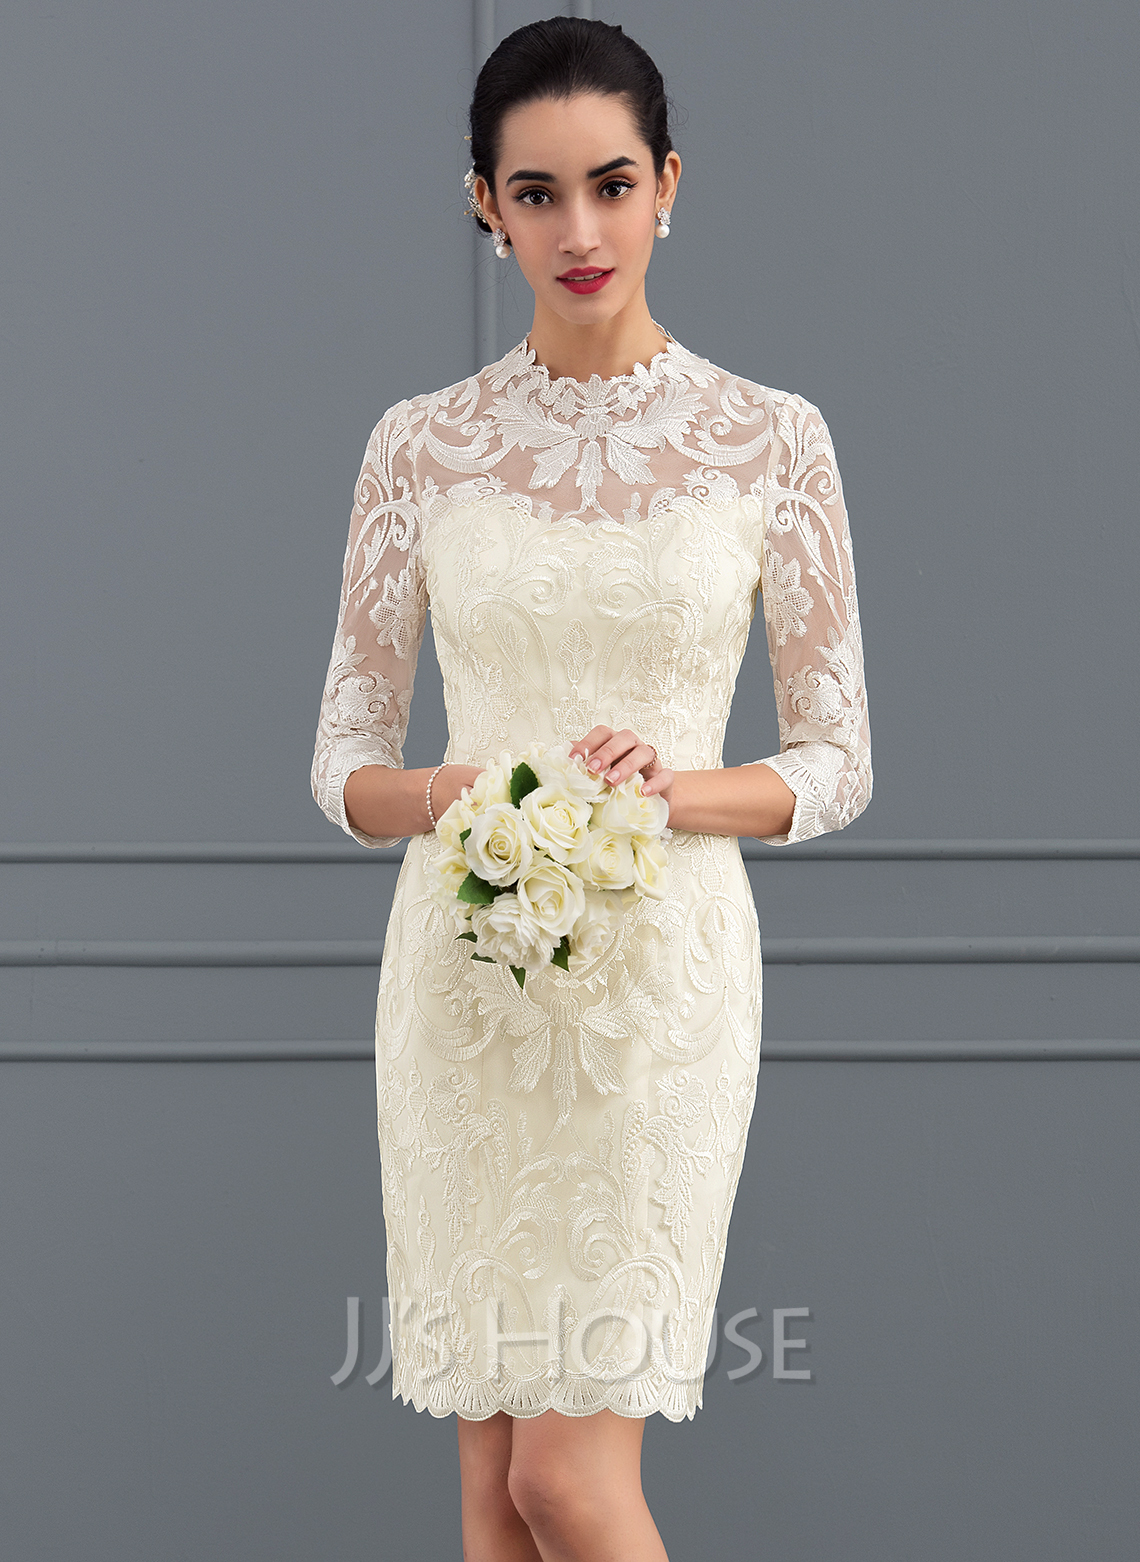 Wedding Dresses Bridal Dresses 2019 Jjs House